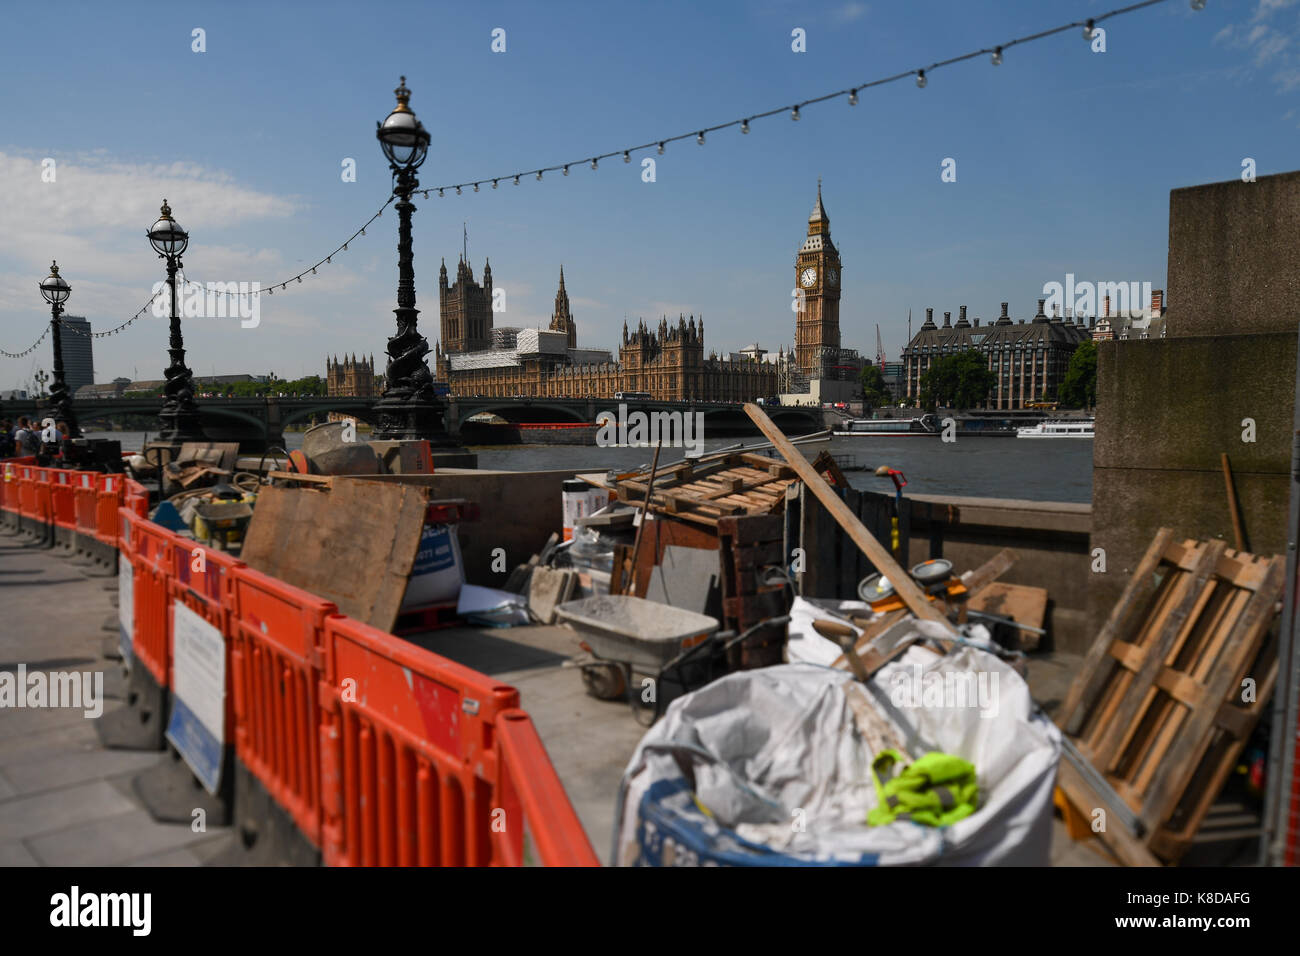 A view of Big Ben ( Elizabeth Tower) in London England with building work and rubbish in the foreground - Stock Image